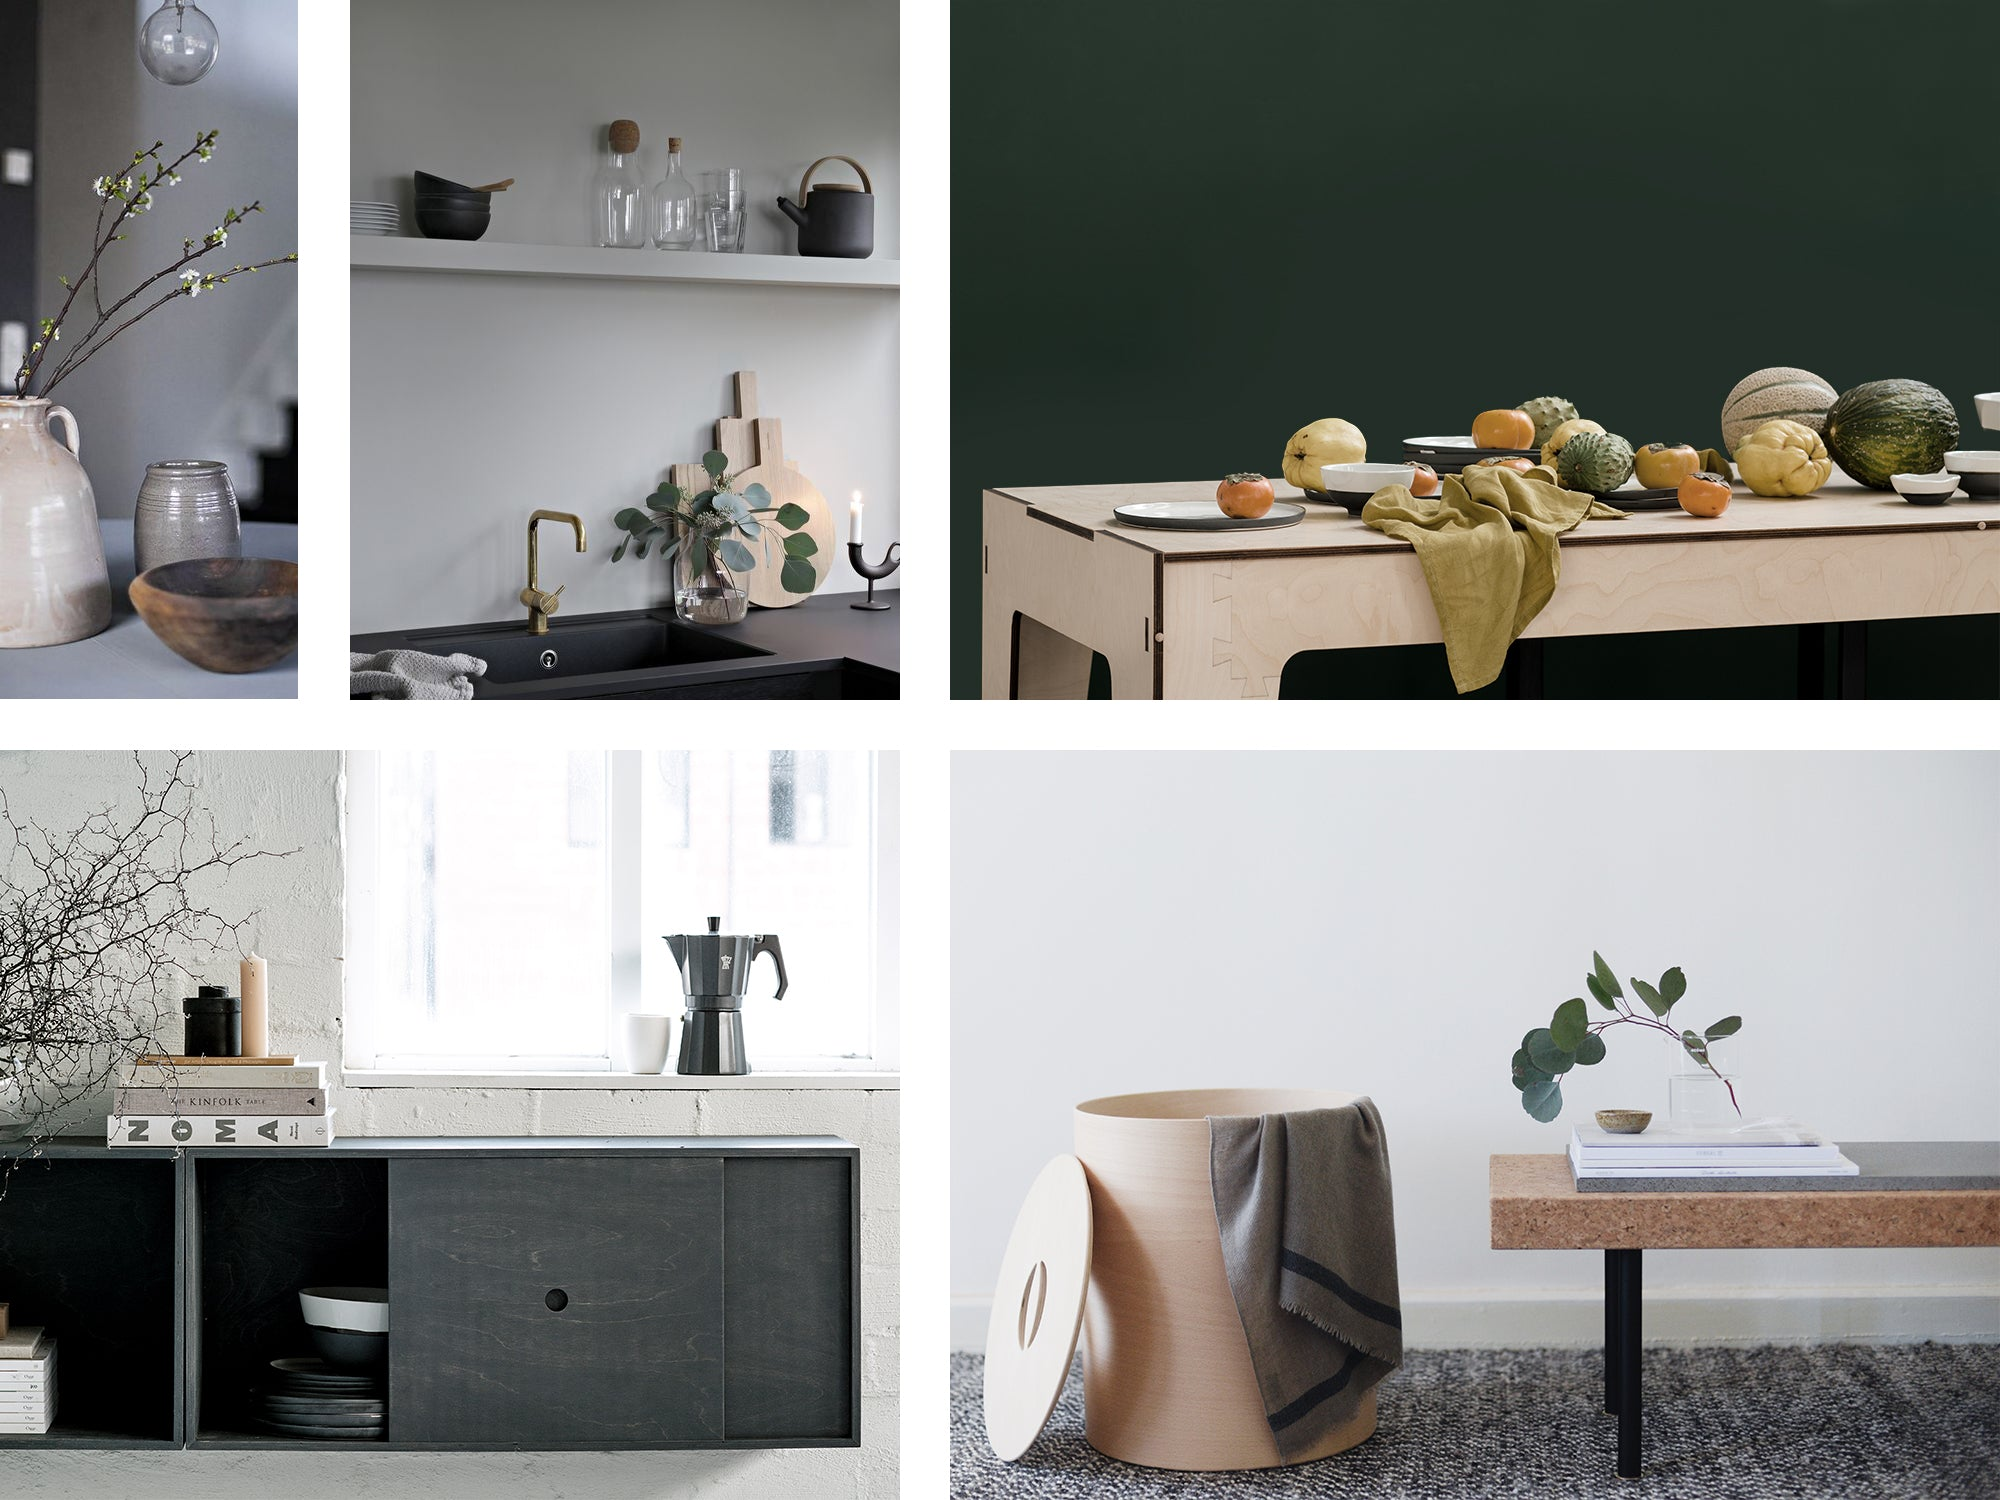 Mood board showing seasonal produce, Plyroom furniture and winter floral arrangements